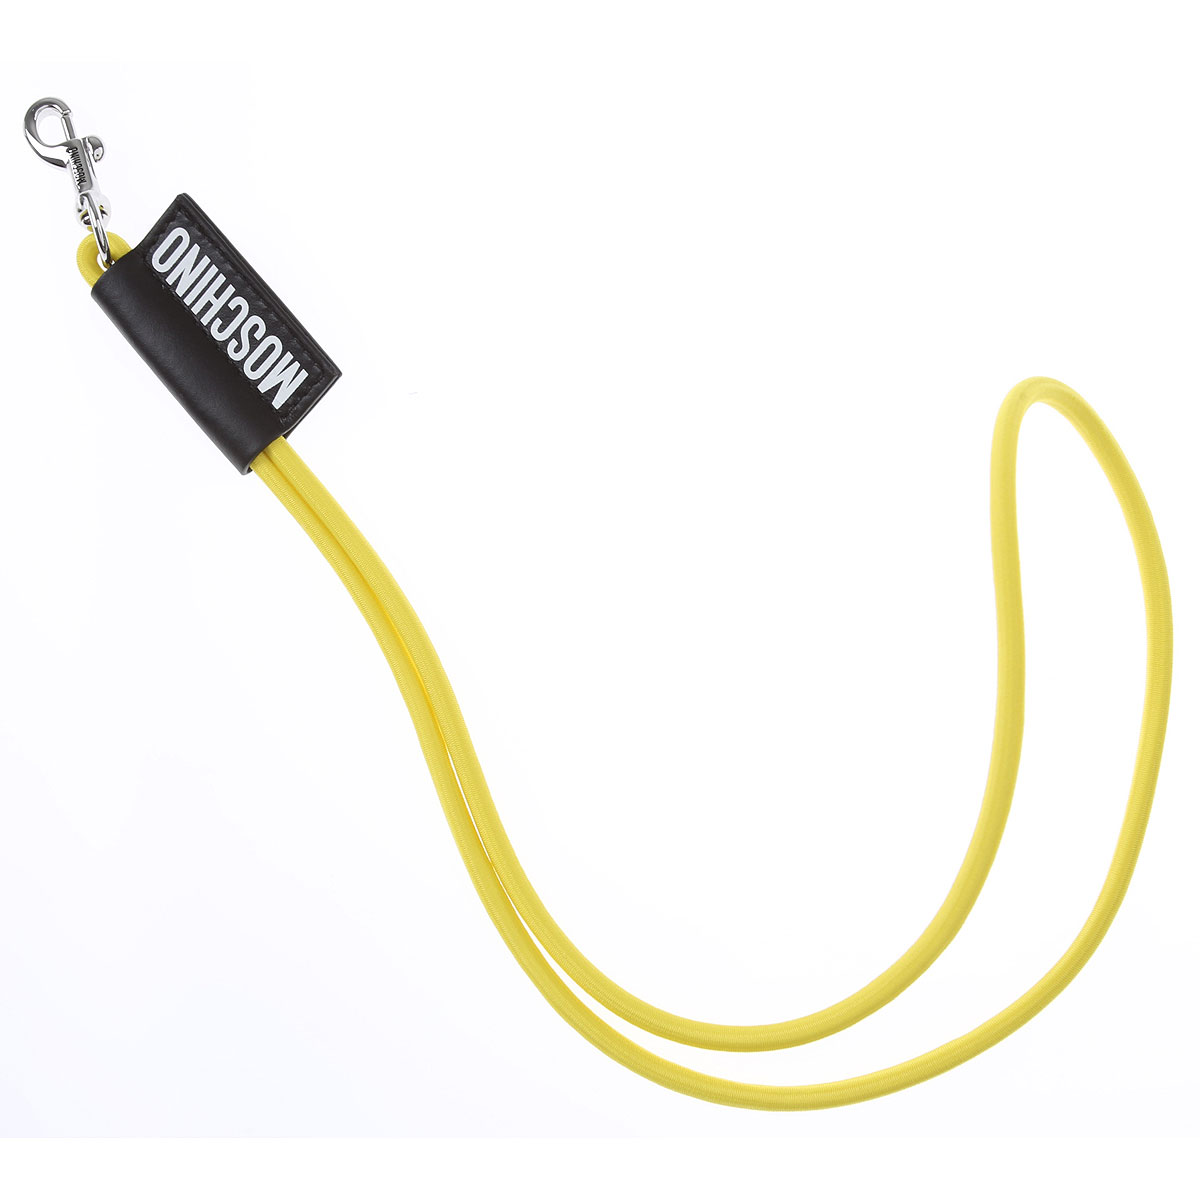 Moschino Key Chain for Men, Key Ring On Sale, Yellow, Fabric, 2019